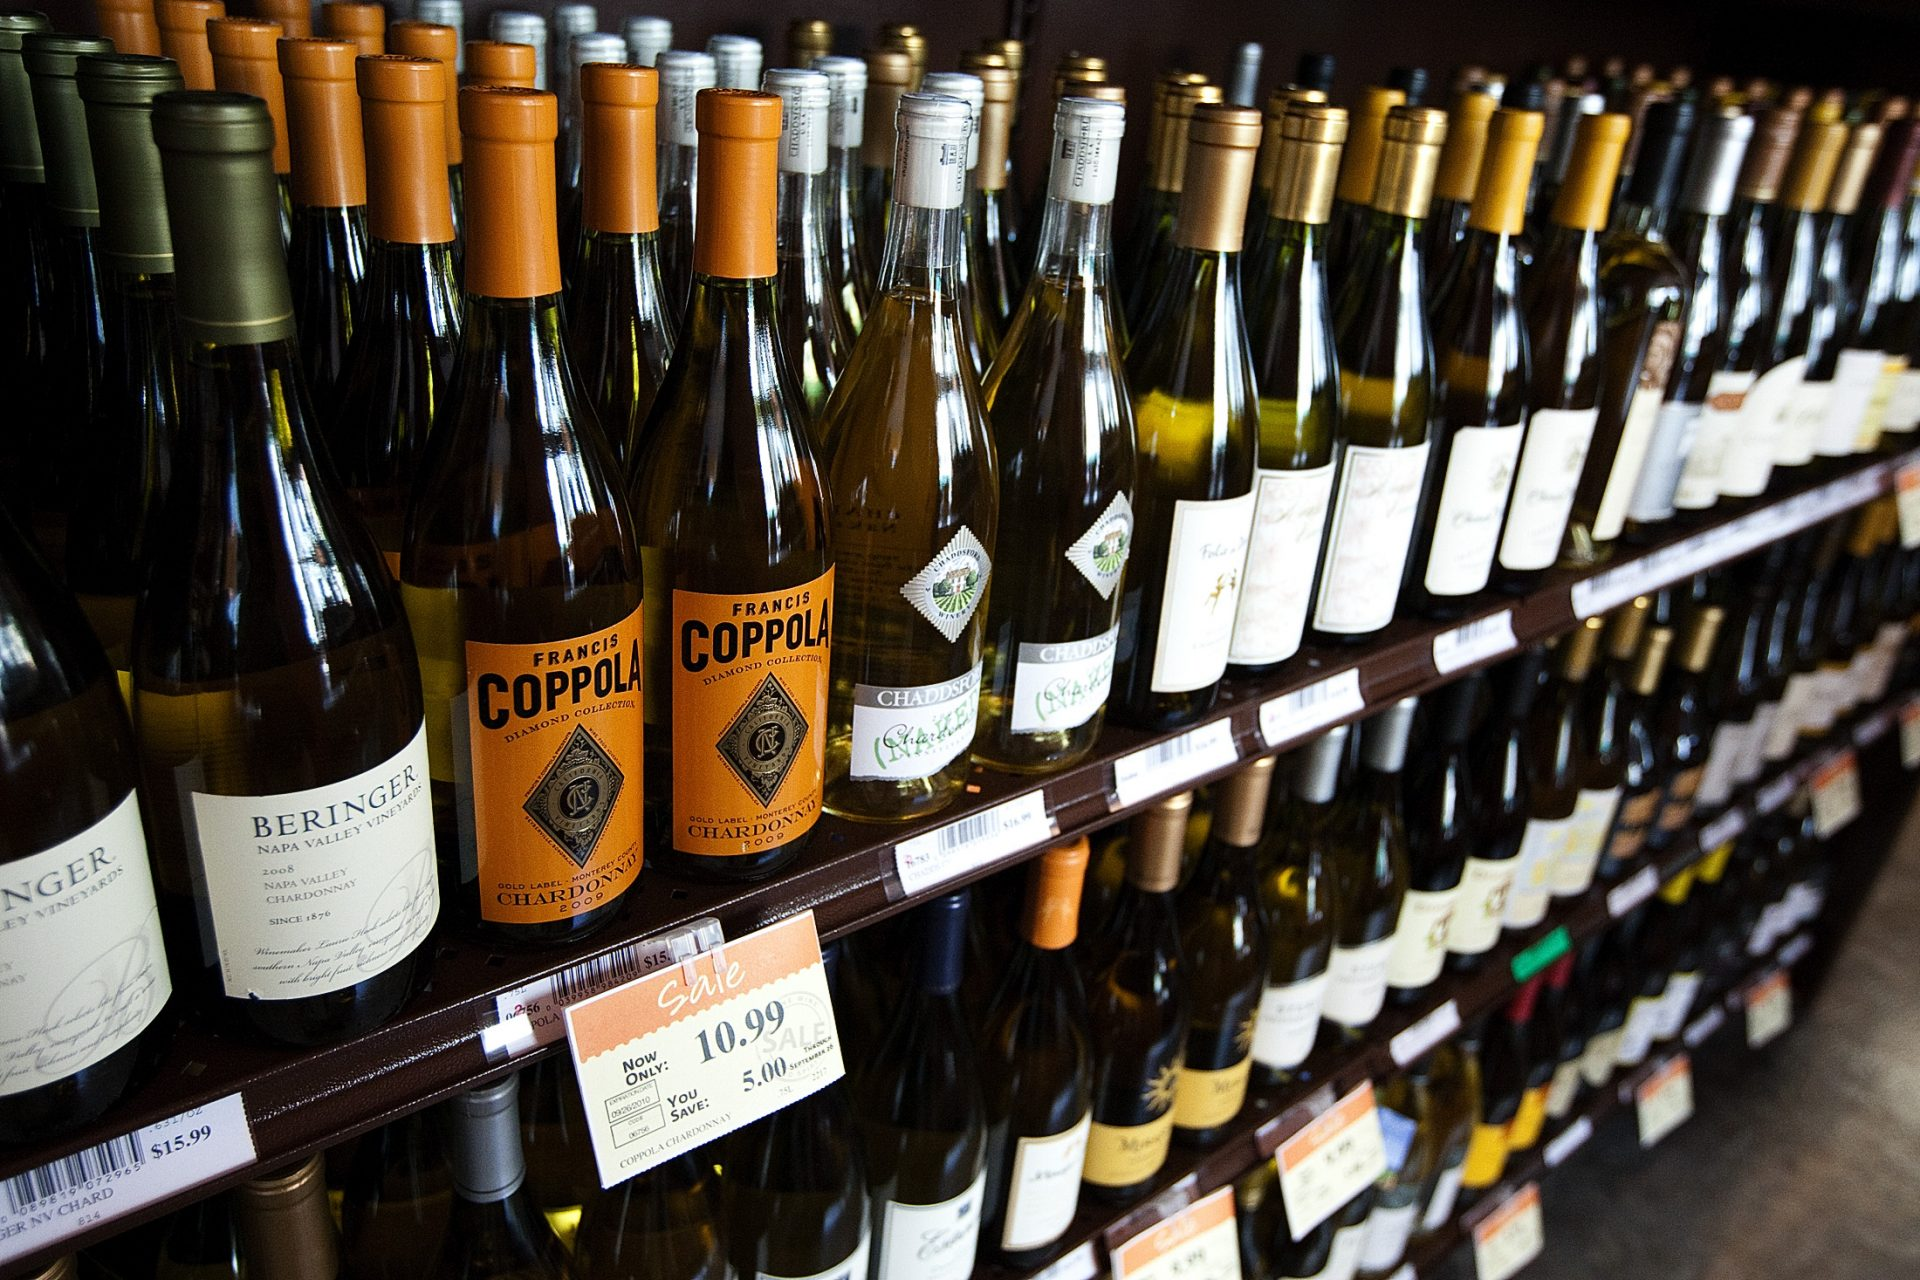 Bottles of wine are on display at the state-run wine and spirits store at 333 Market St. in Harrisburg.